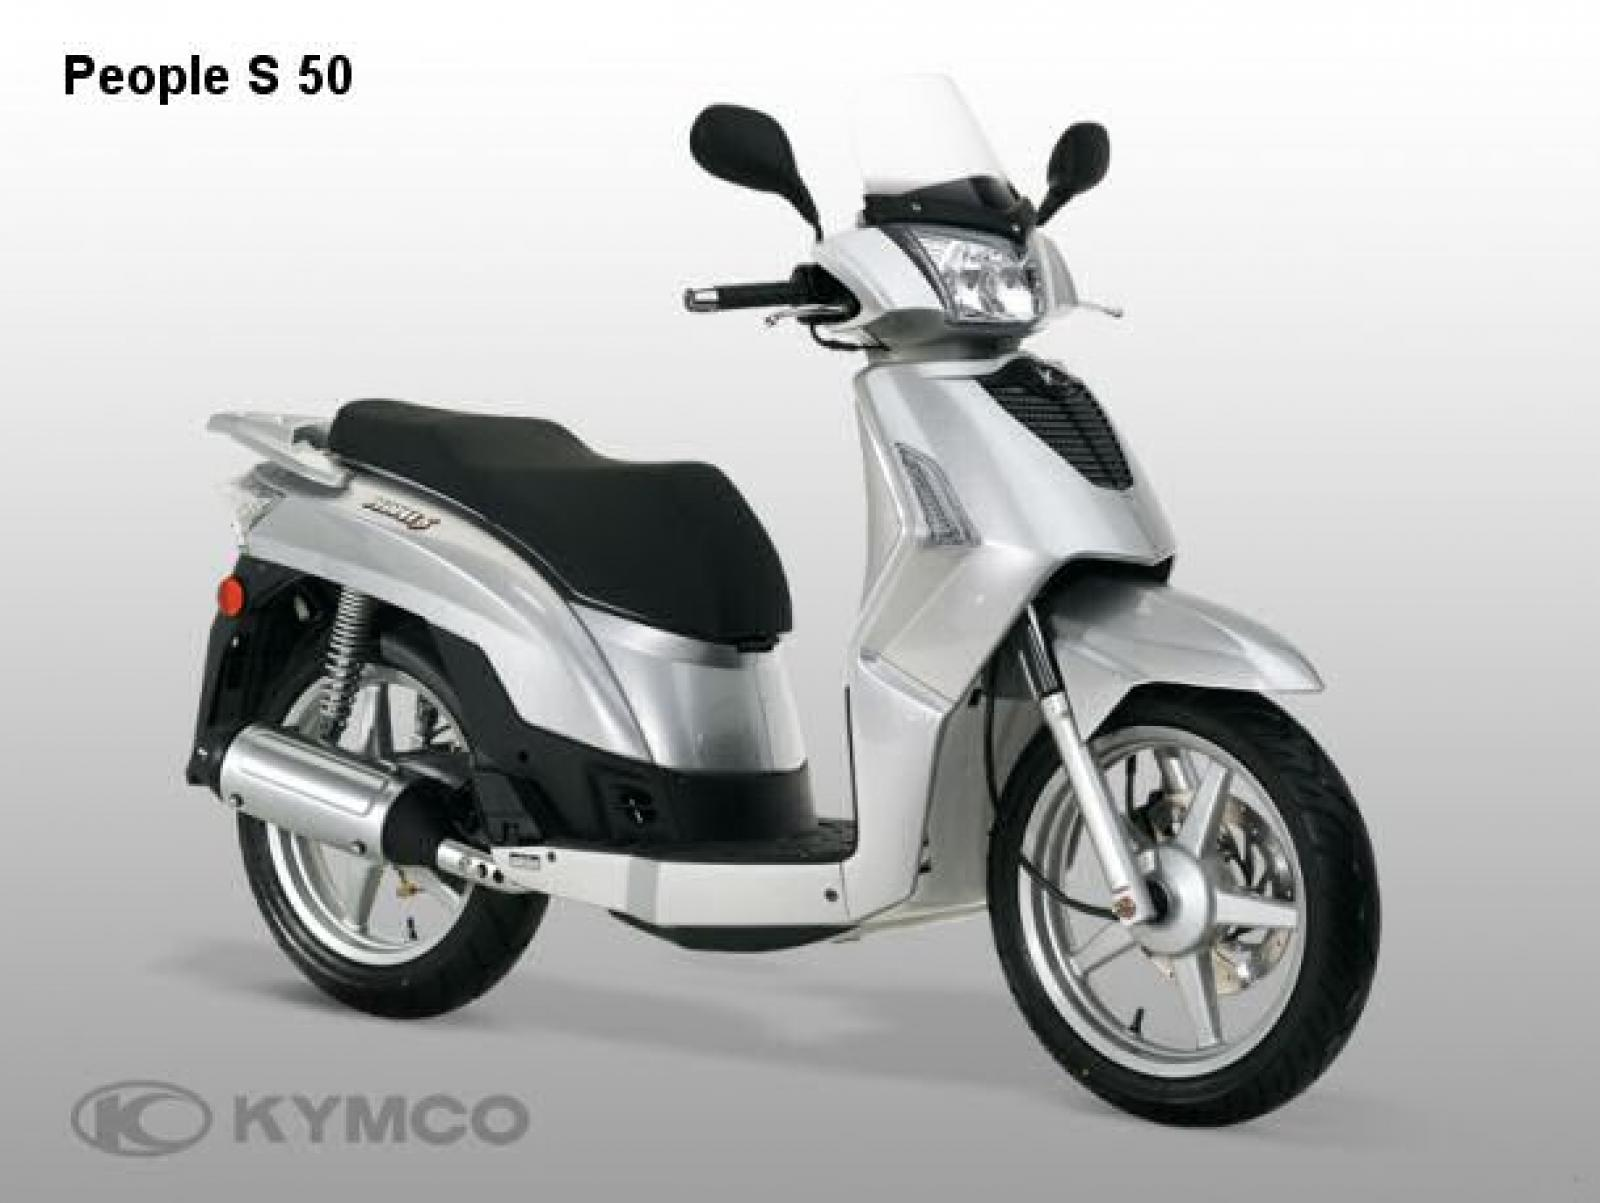 2007 kymco people s 50 moto zombdrive com. Black Bedroom Furniture Sets. Home Design Ideas